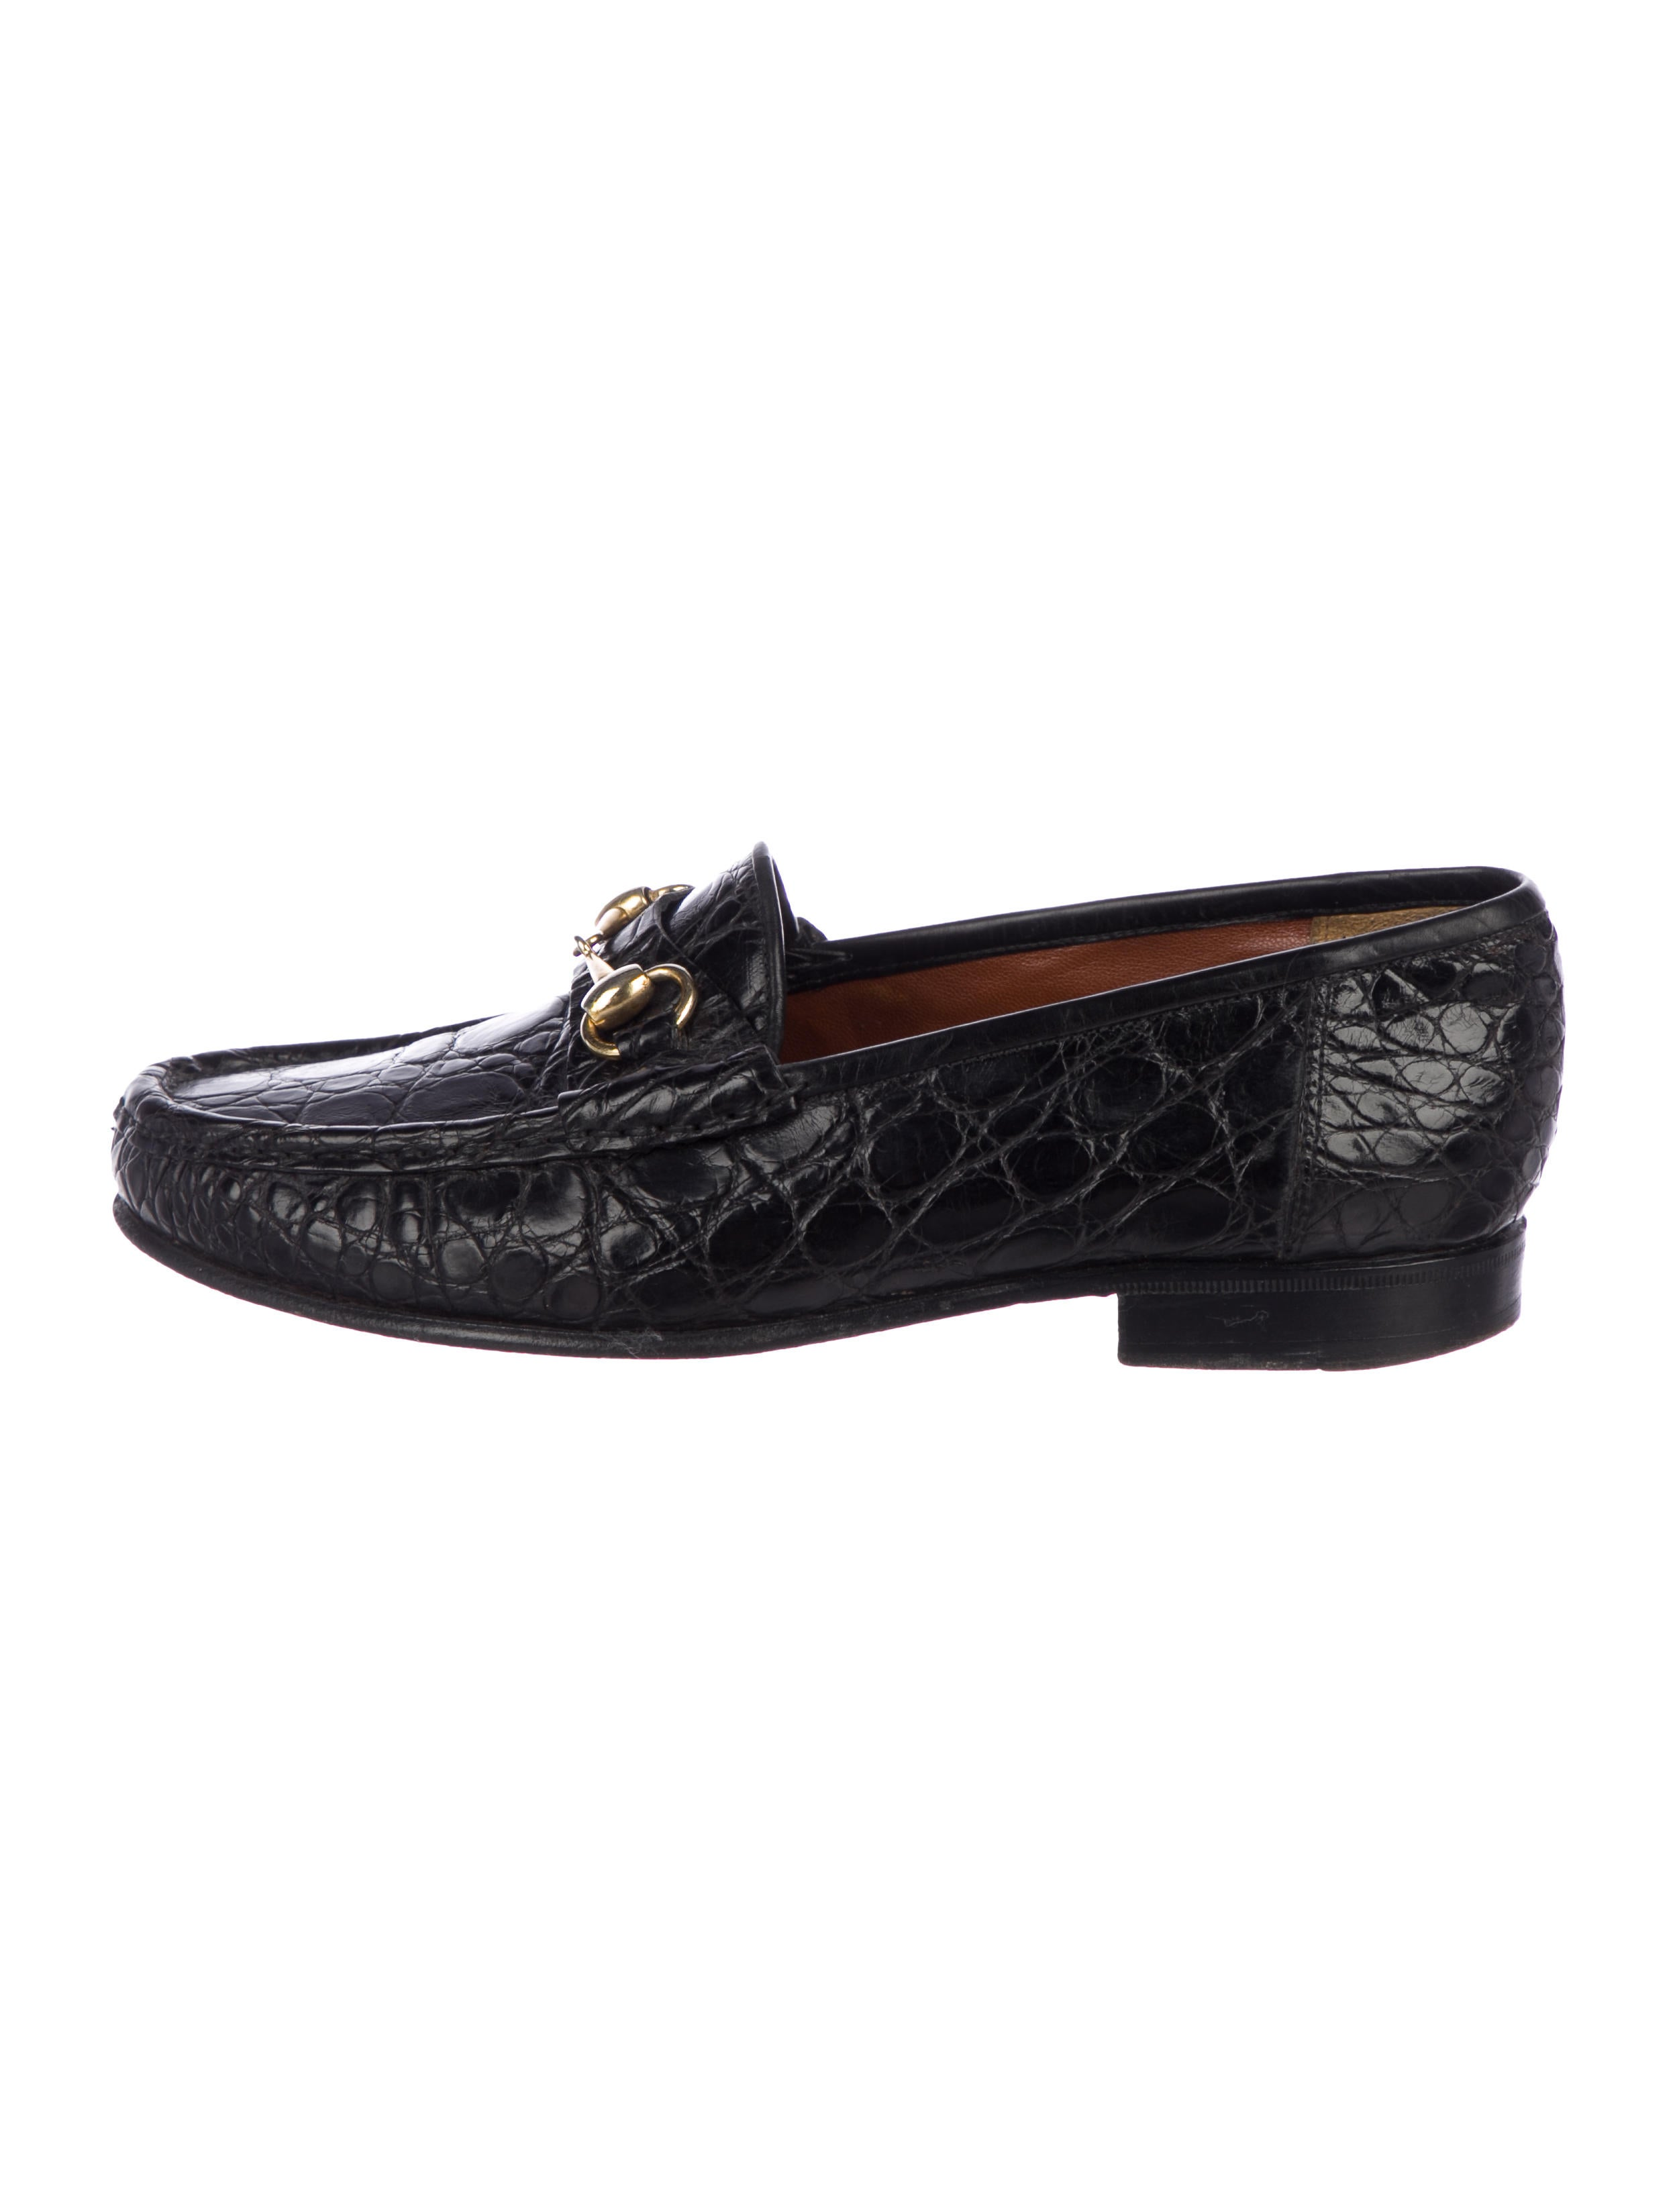 7ca8a6be193 Gucci Vintage Horsebit Crocodile Loafers - Shoes - GUC242385